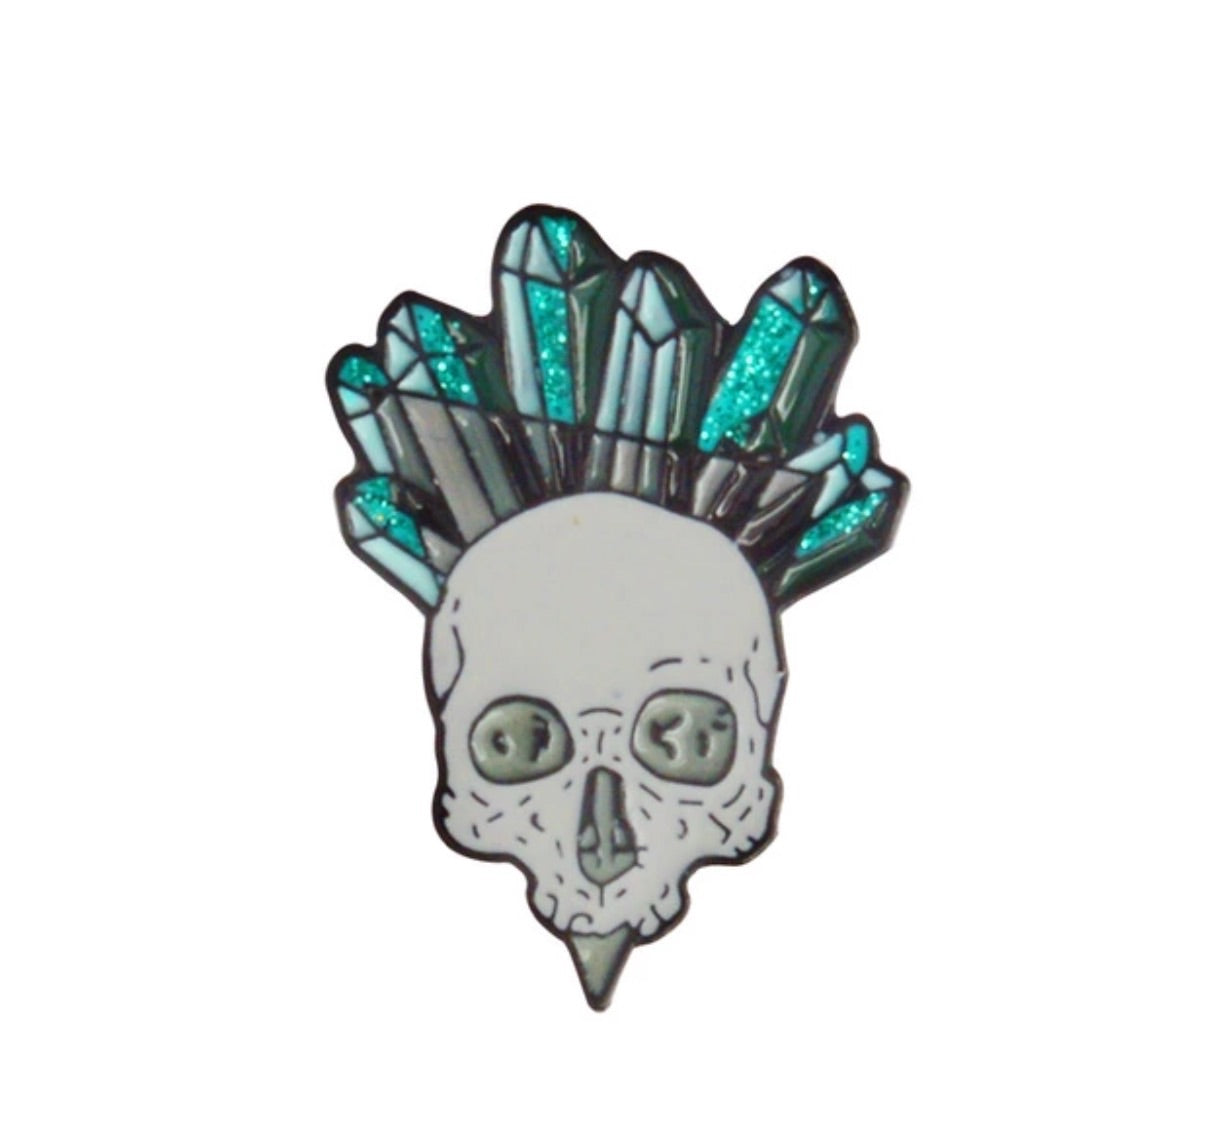 Crystal Skull 2 Pin Badge (Enamel) - TrippyKitty